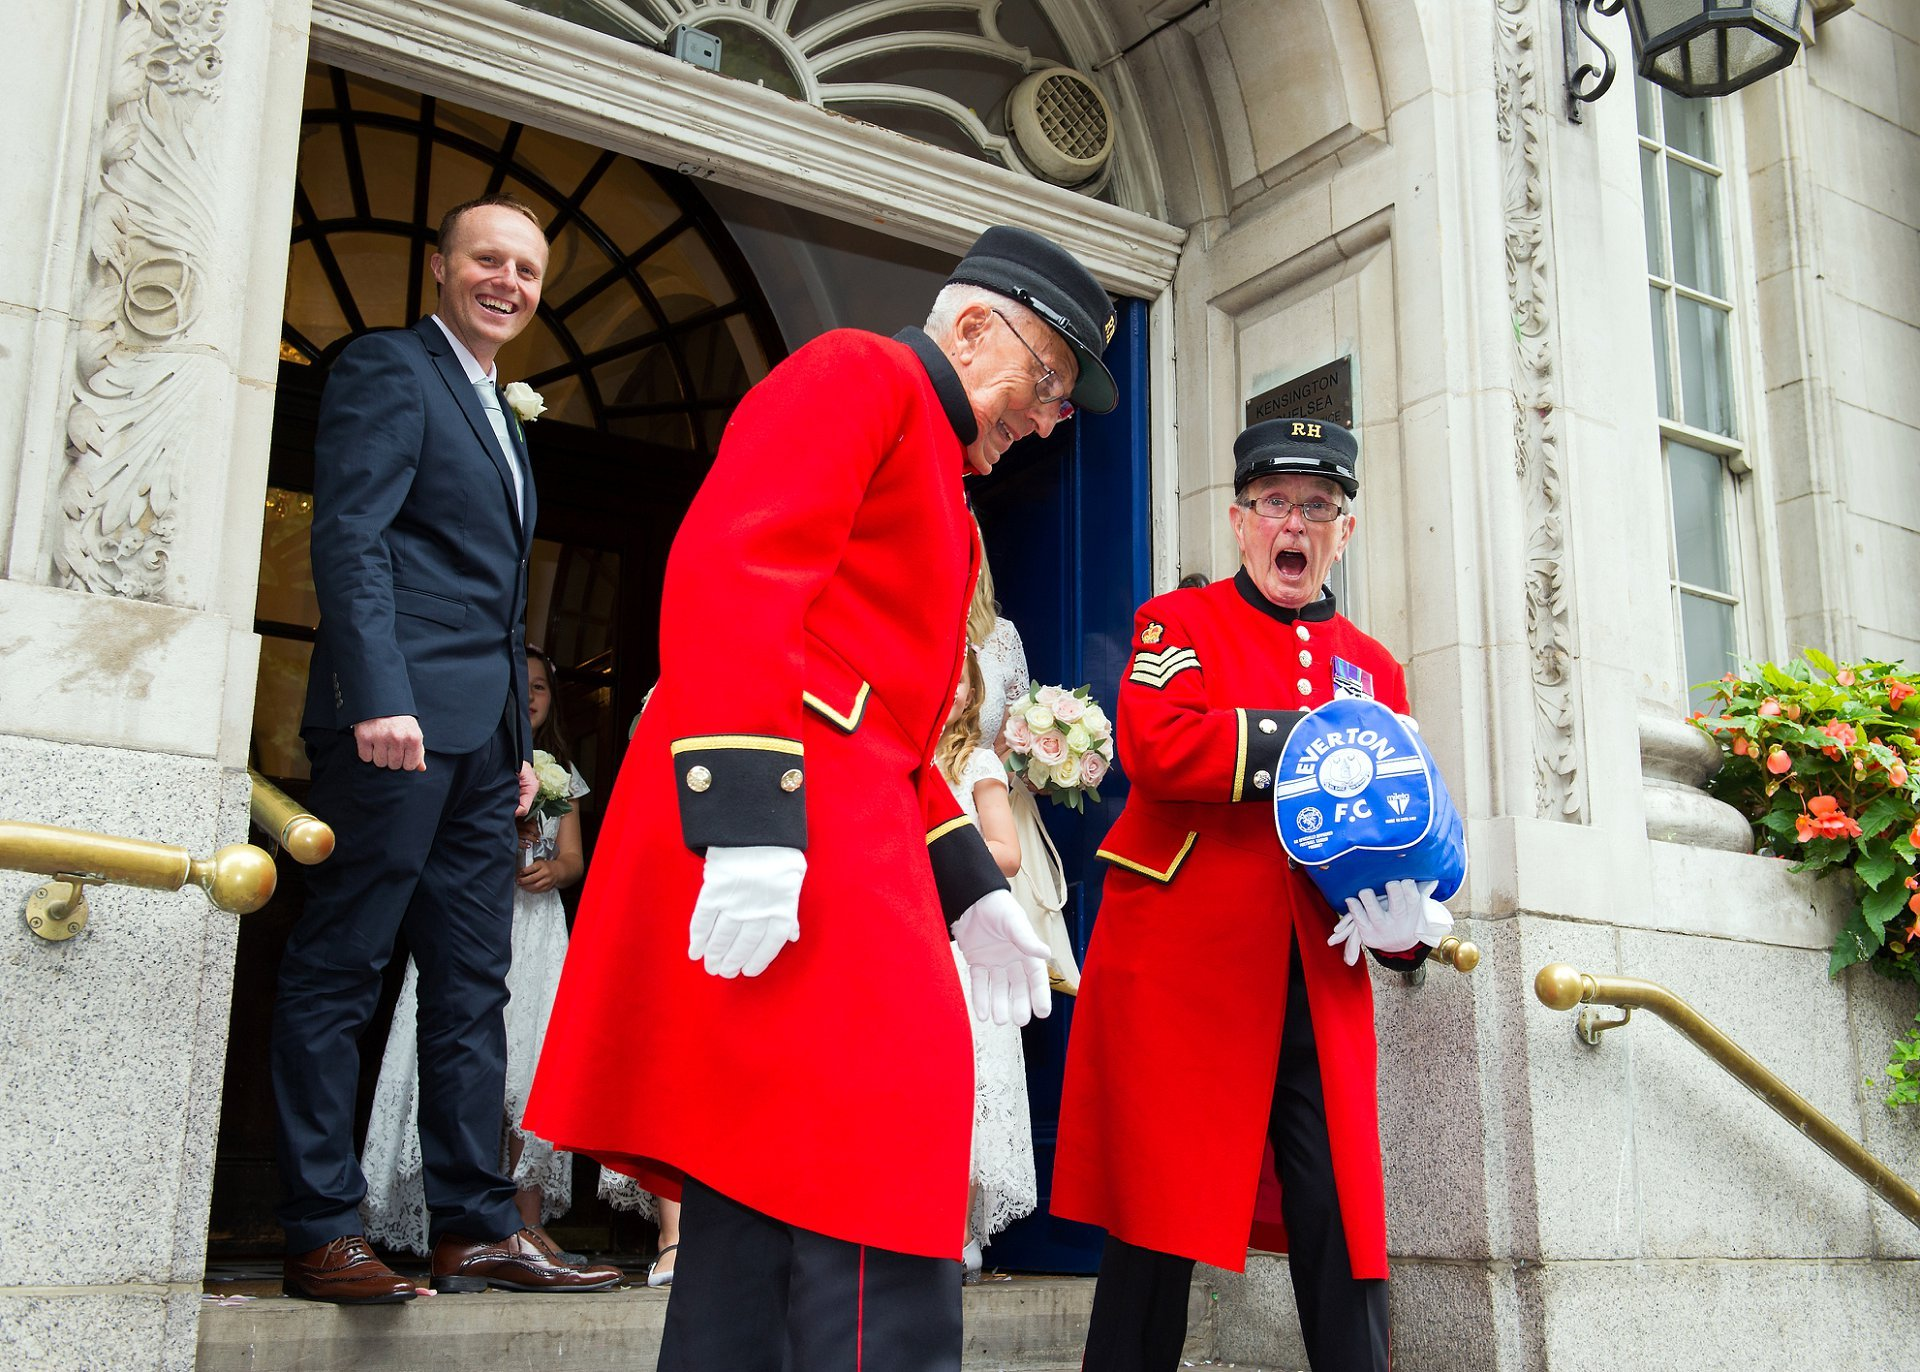 Chelsea Pensioner Walter laughing about his Eveton bag as he and his fellow Chelsea Pensioner leave Chelsea Town Hall